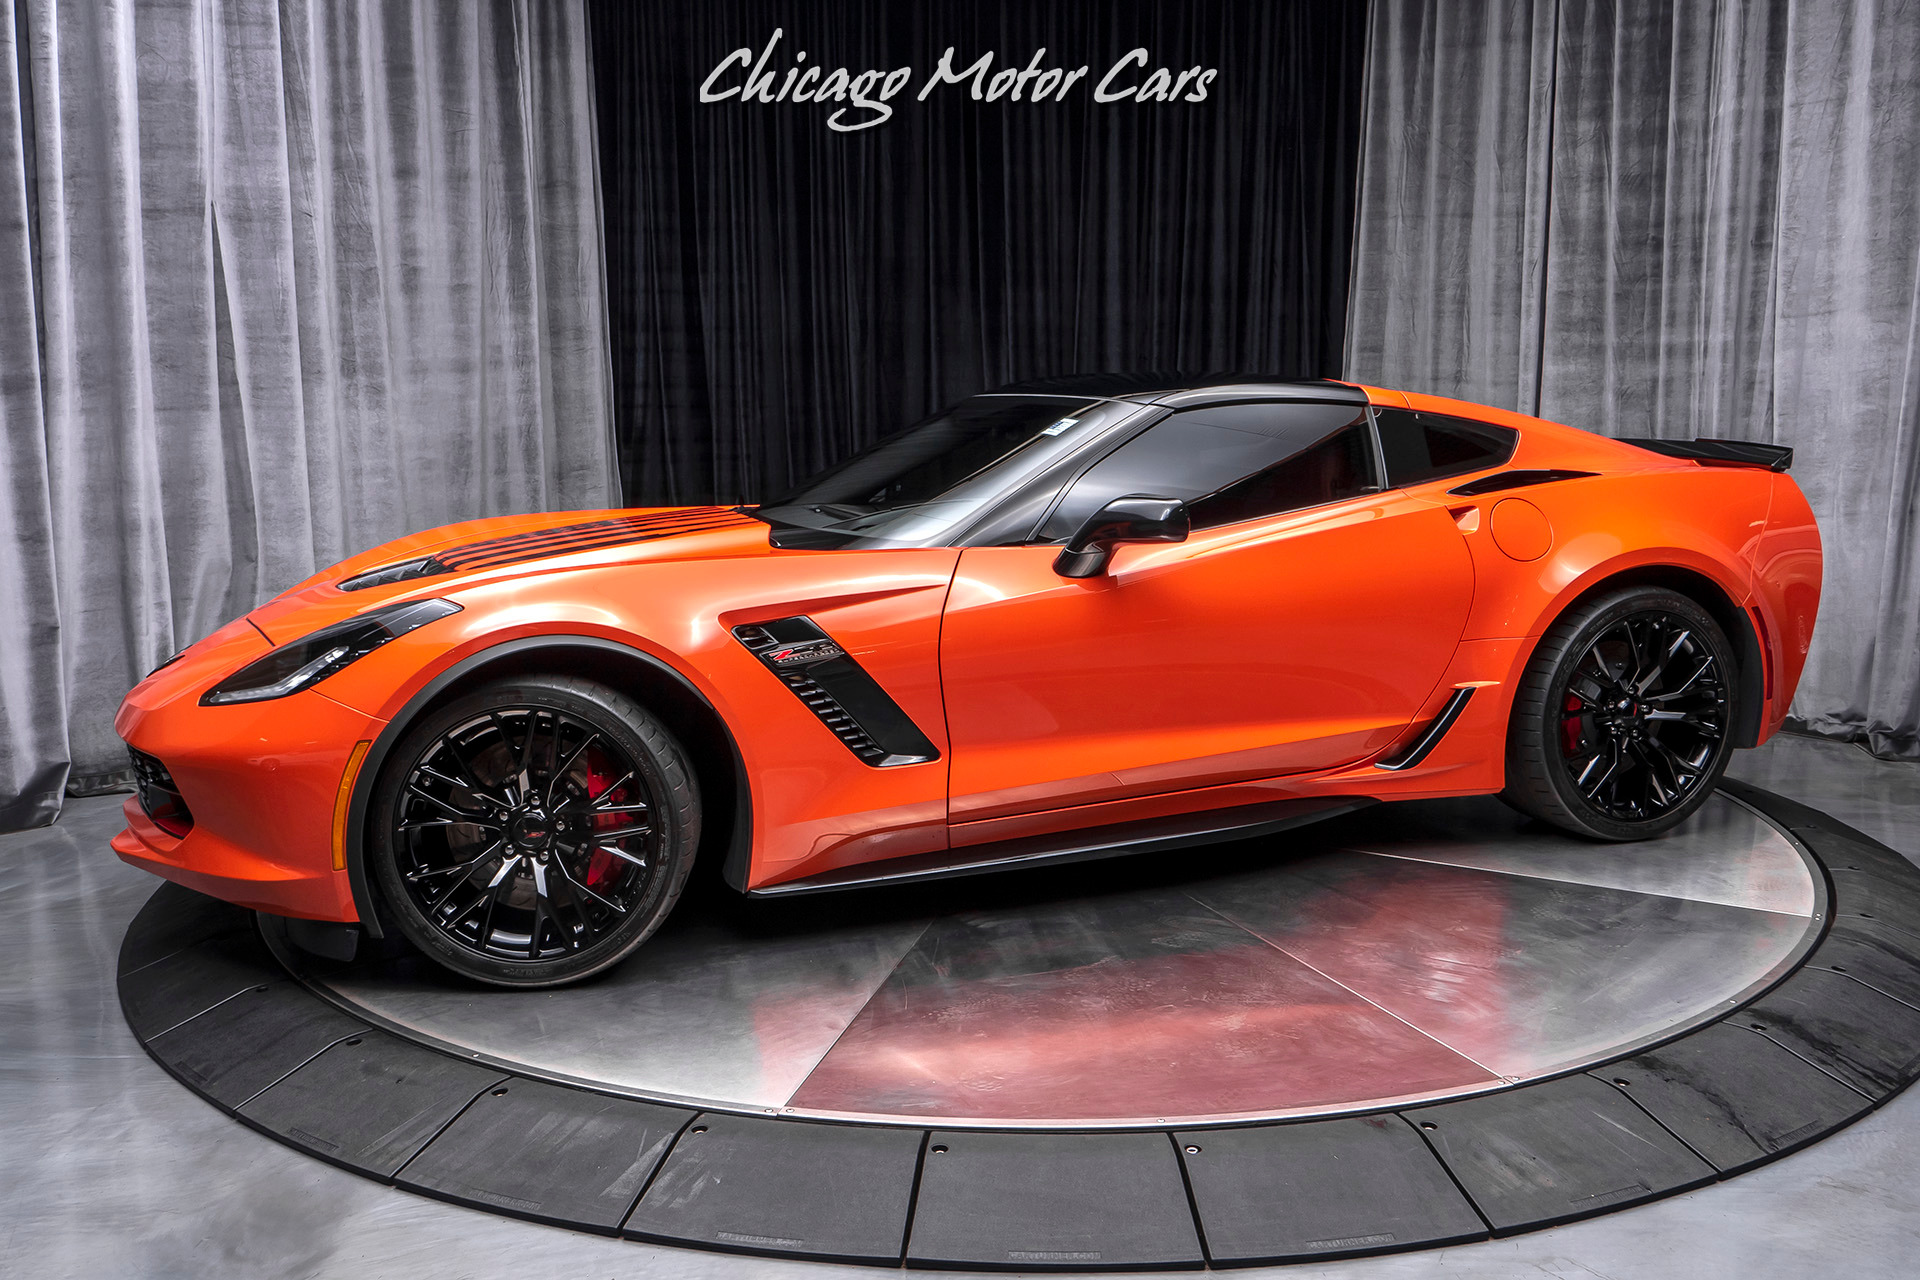 Used 2019 Chevrolet Corvette Z06 Coupe Only 1400 Miles! For